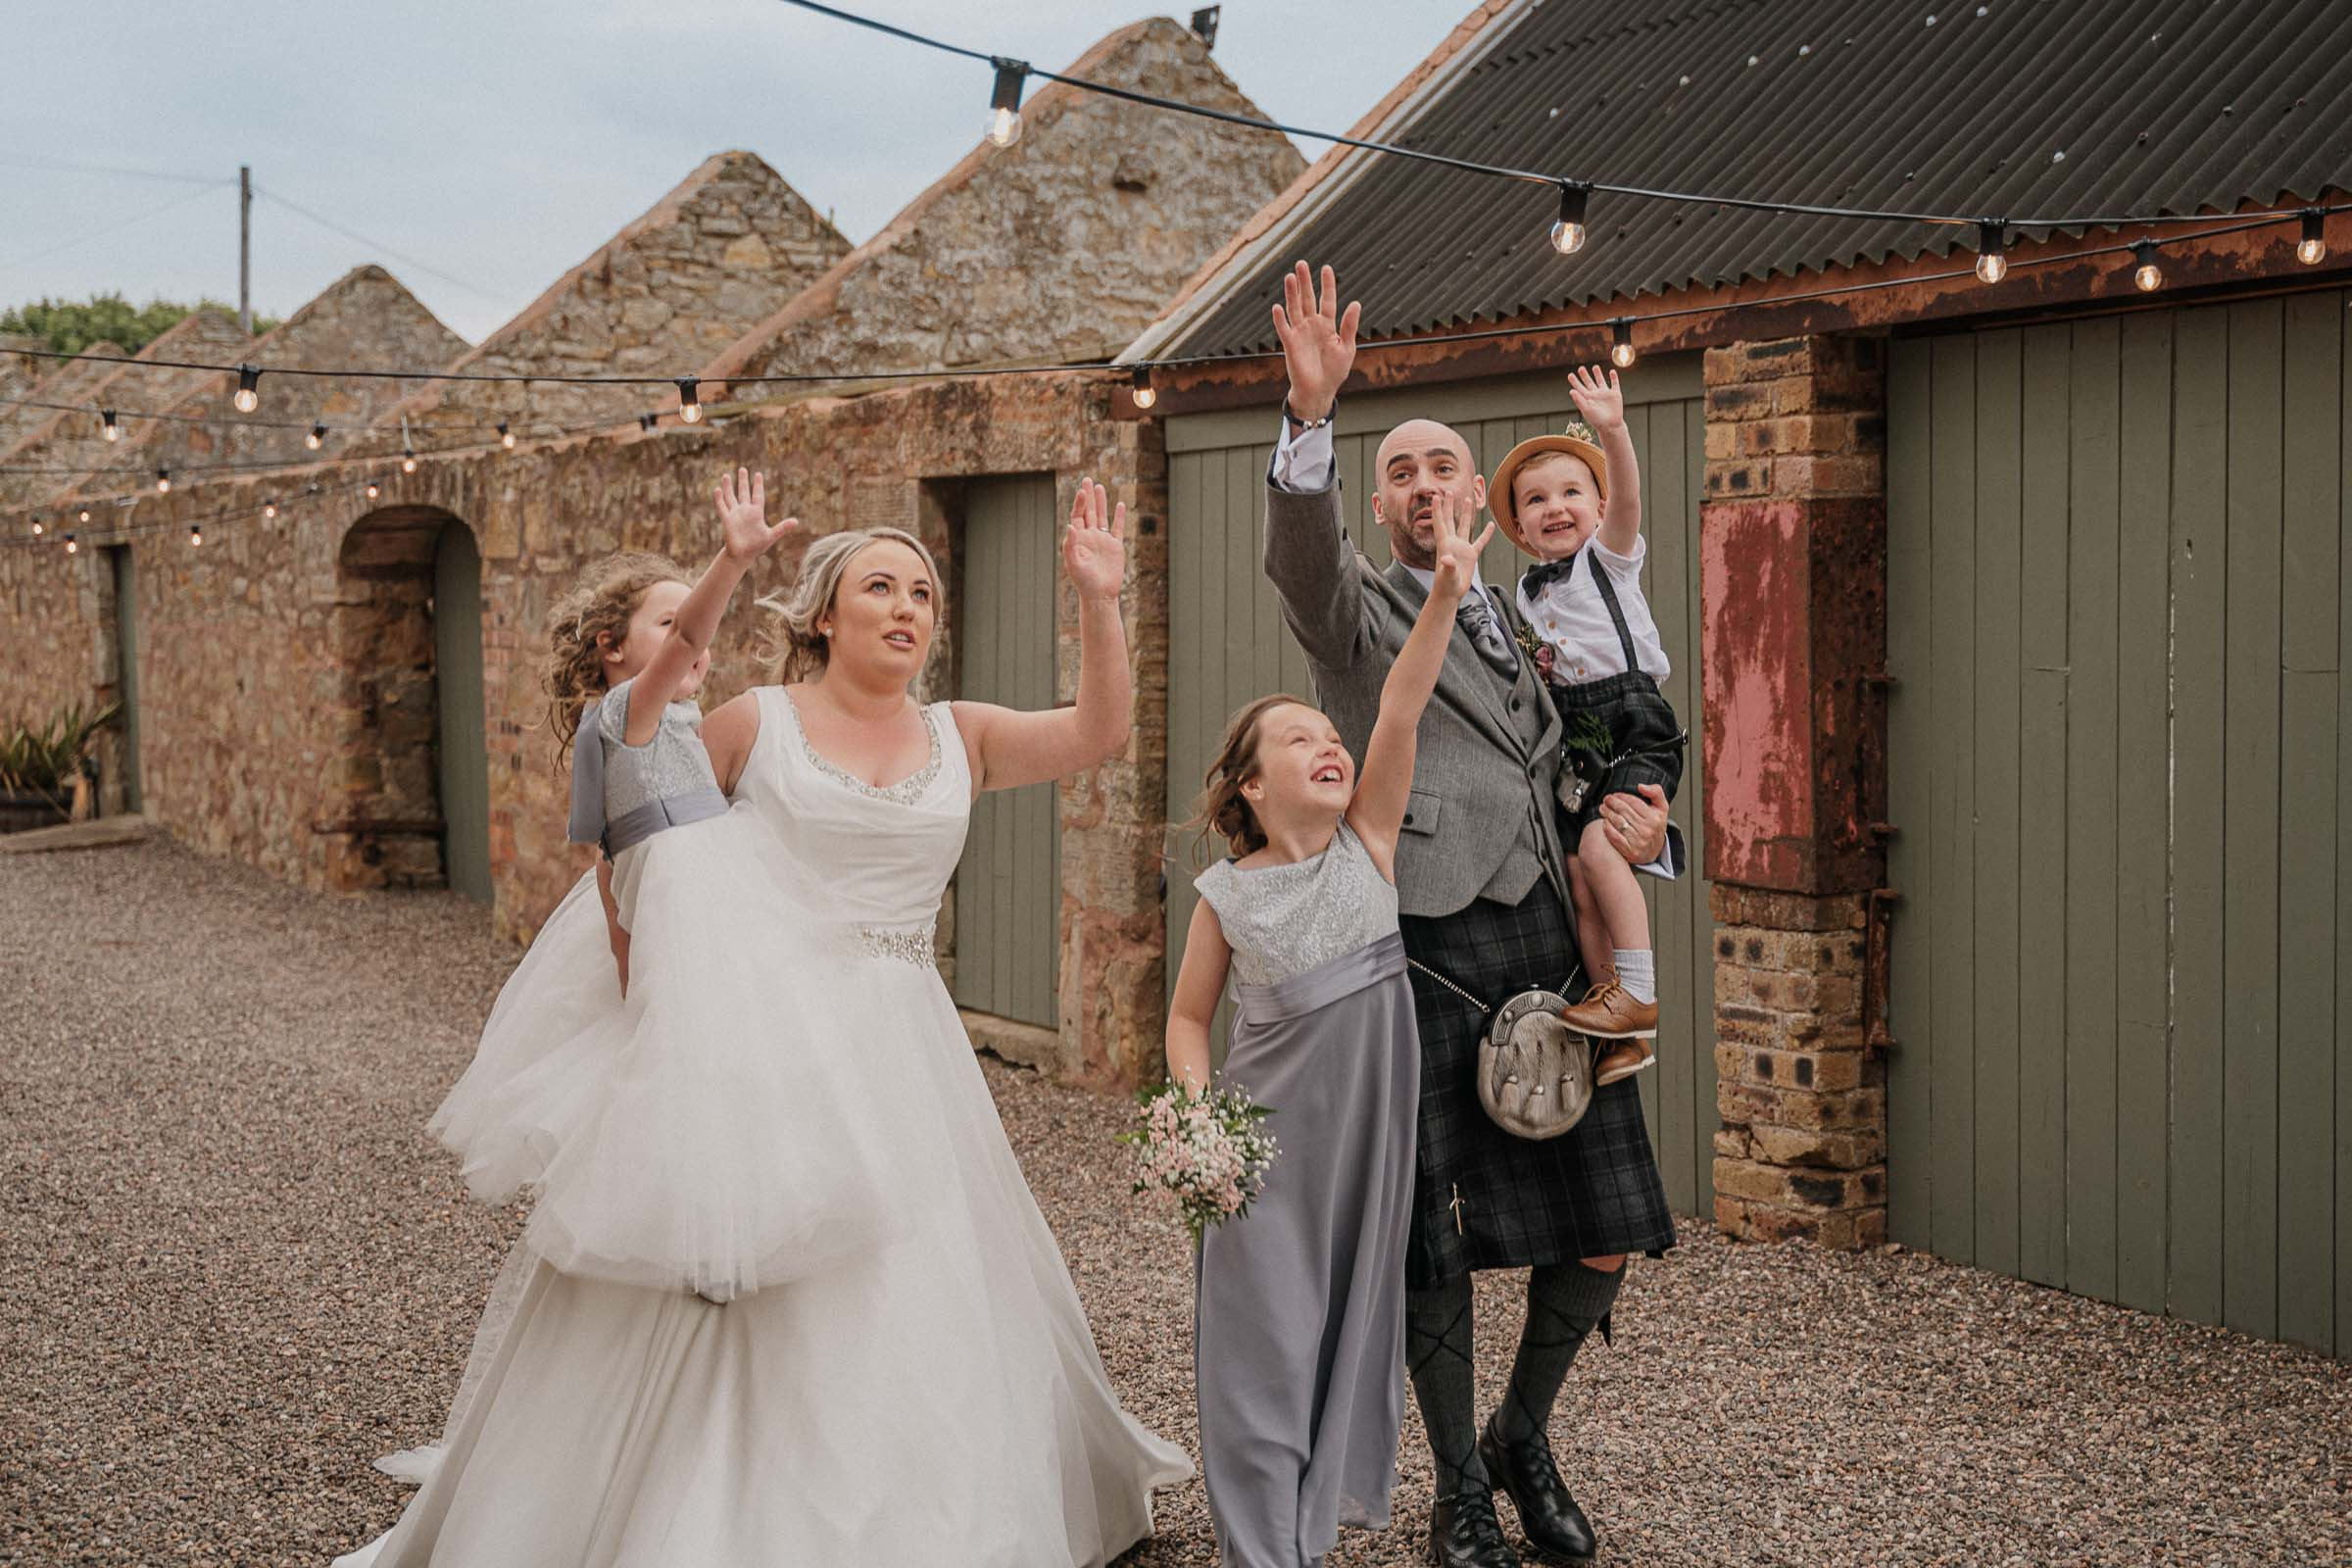 cowshed-crail-wedding-dearlyphotography (16 of 26).jpg